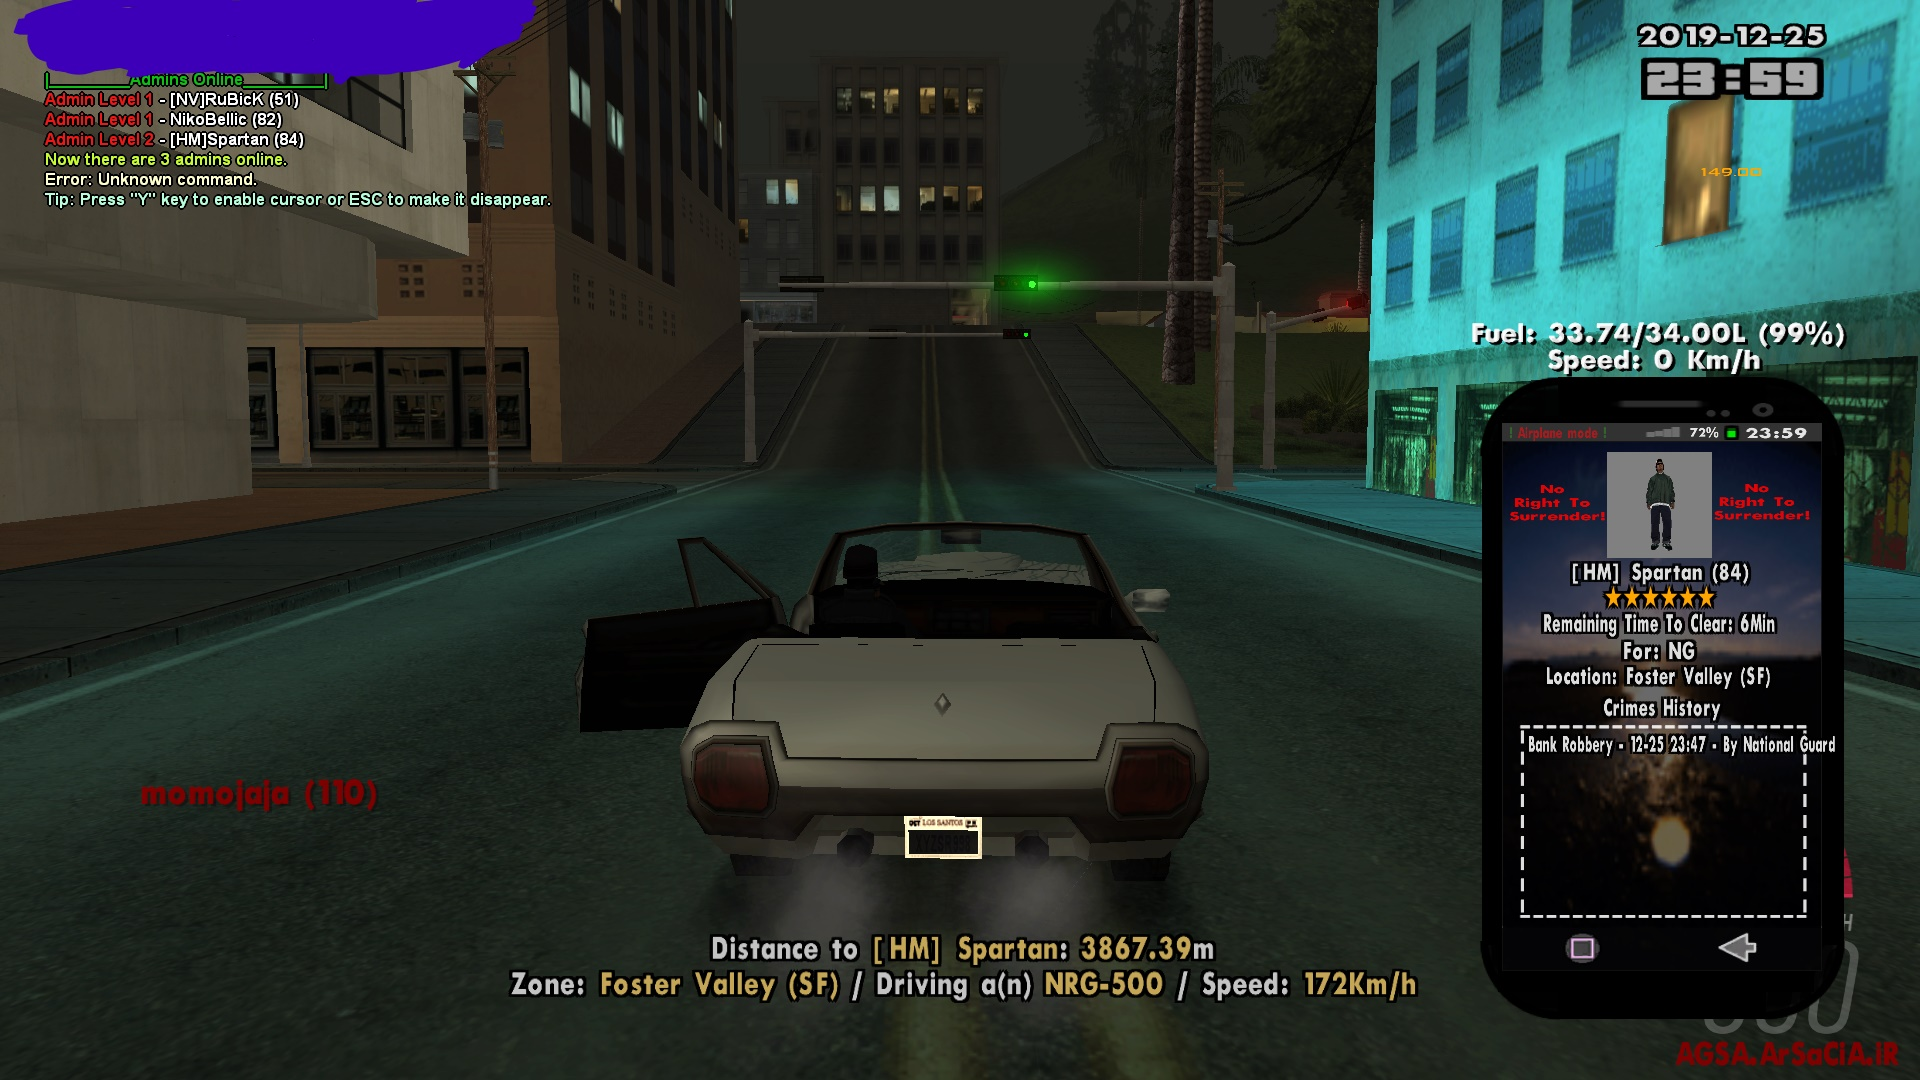 zj04_screenshot_(67)_li.jpg